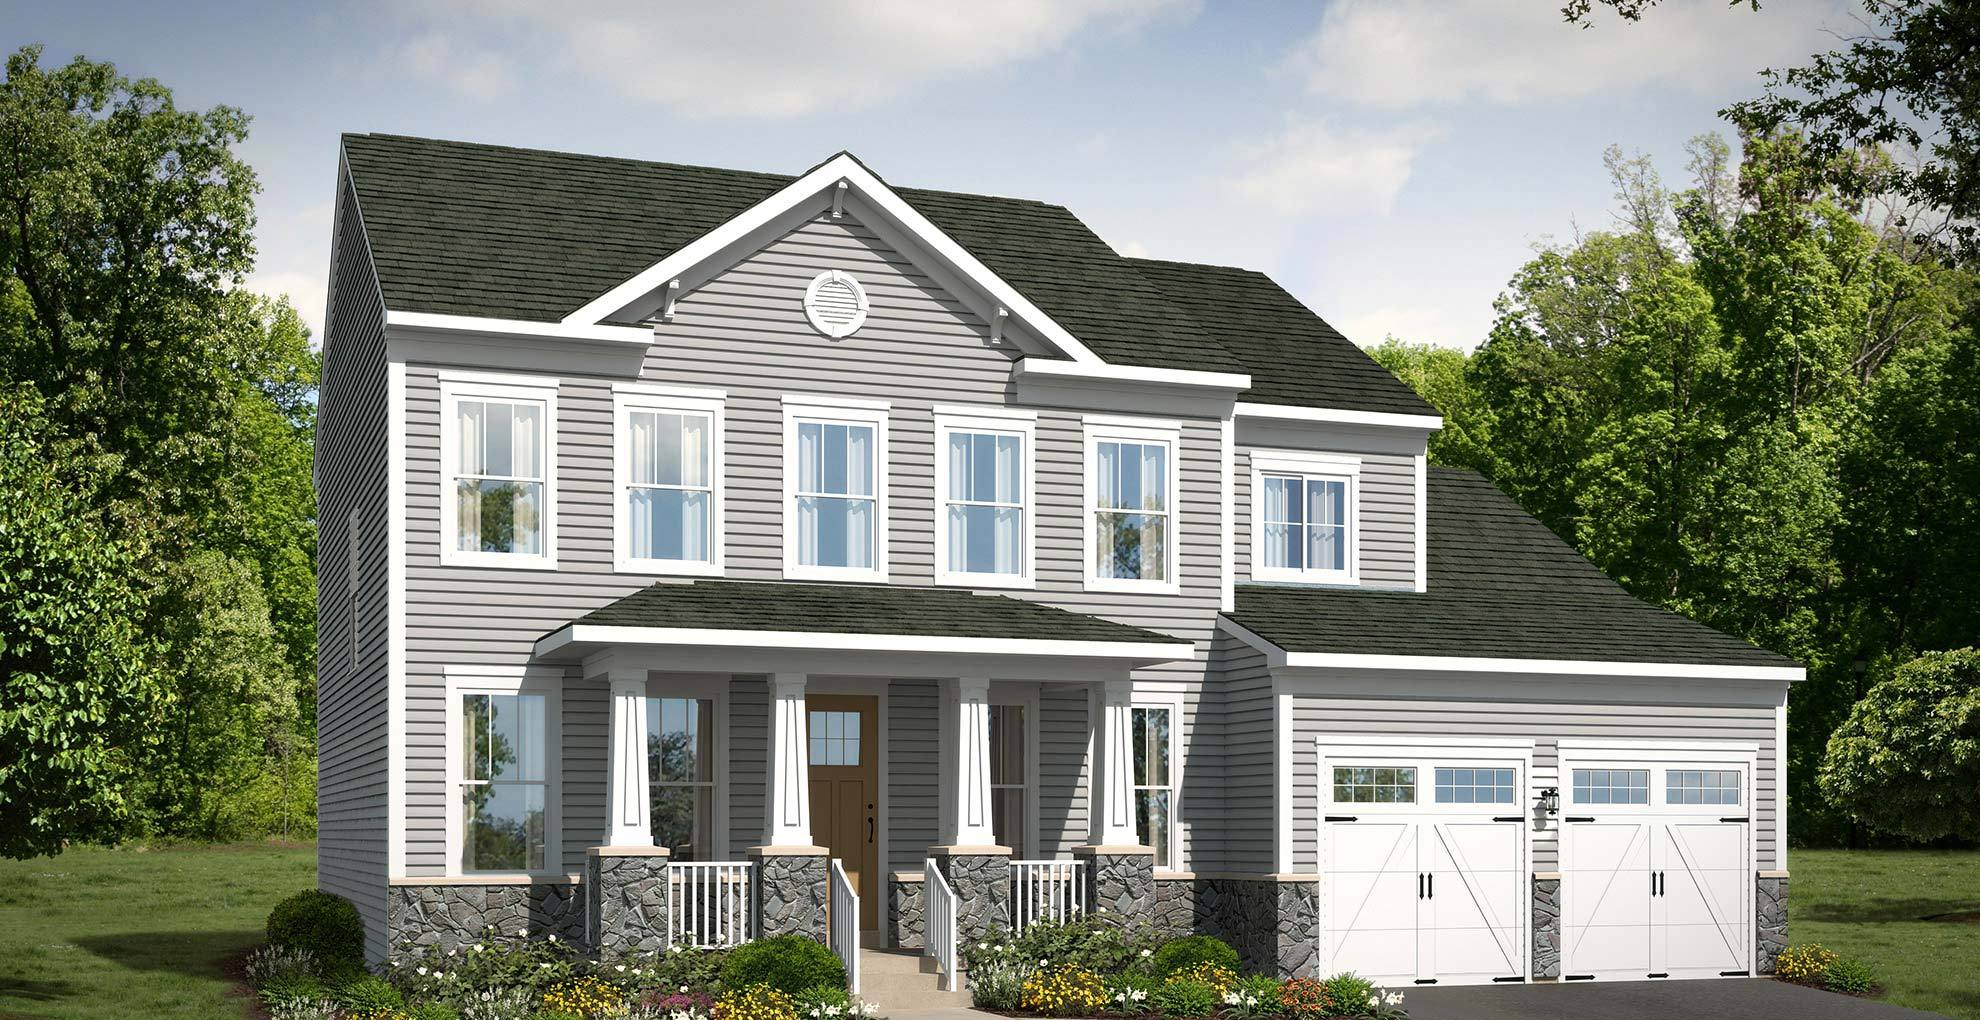 Real Estate at Windsor Hill Manor, Triangle in Prince William County, VA 22172